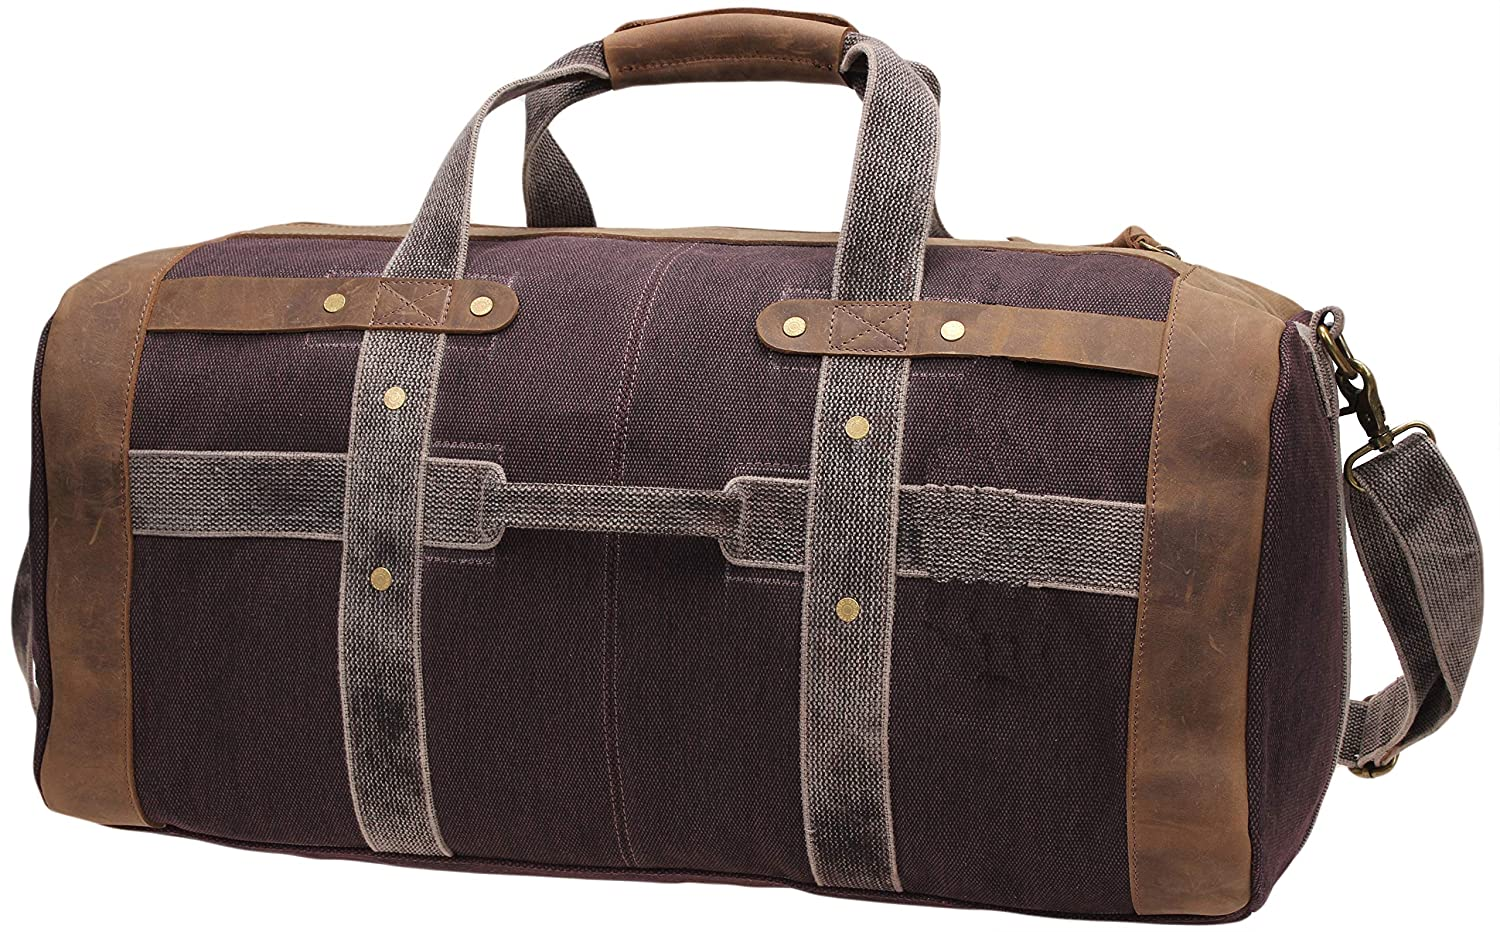 Iblue Weekend Bag Travel Duffel Bags For Men Canvas Carry On #B007